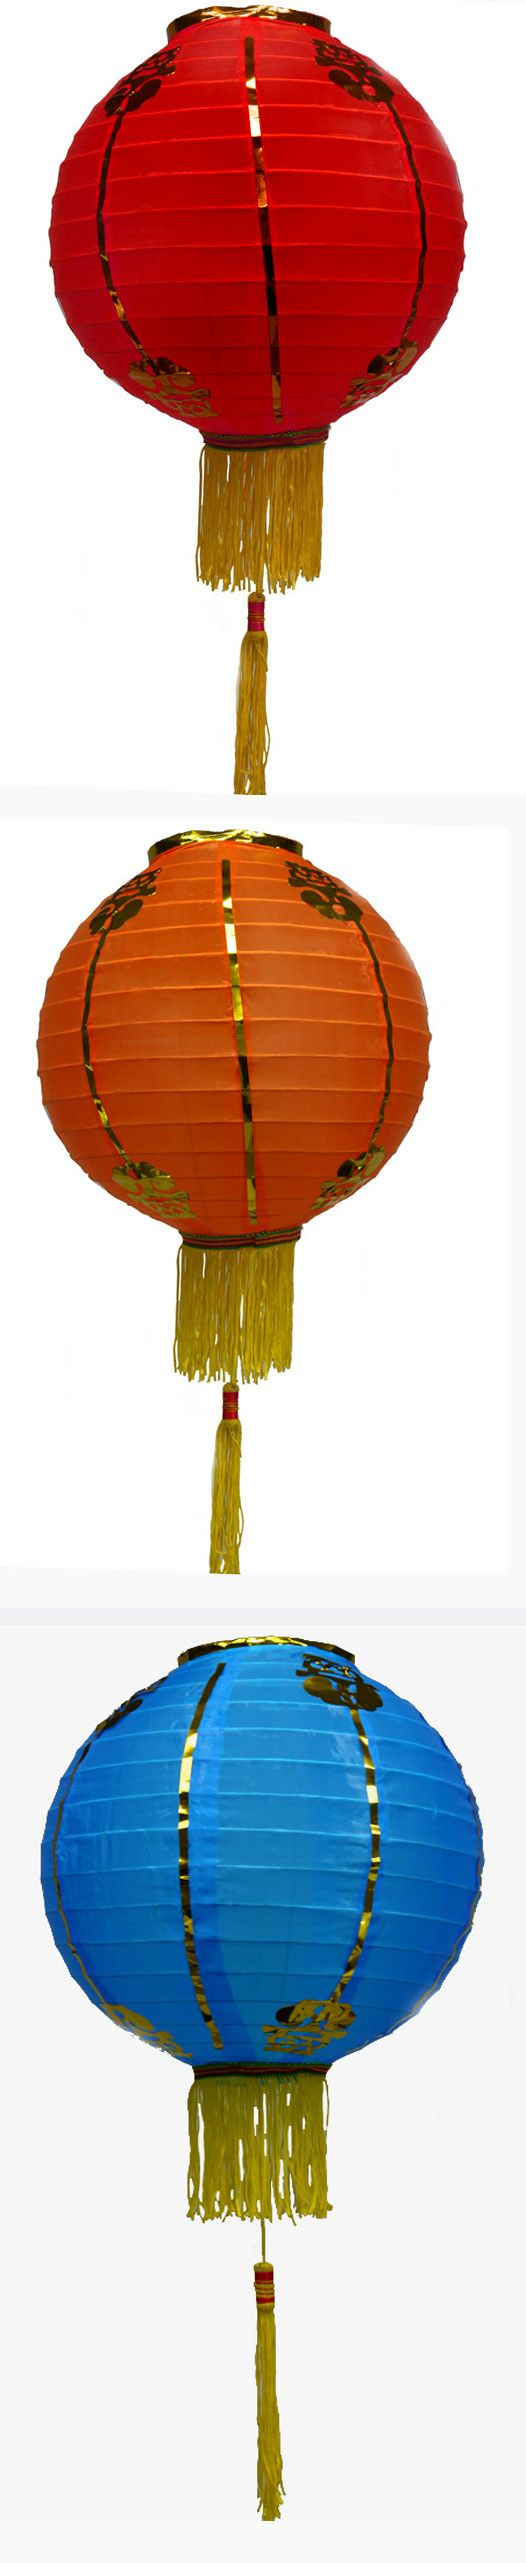 traditional Chinese lanterns with tassels from the paper lantern store